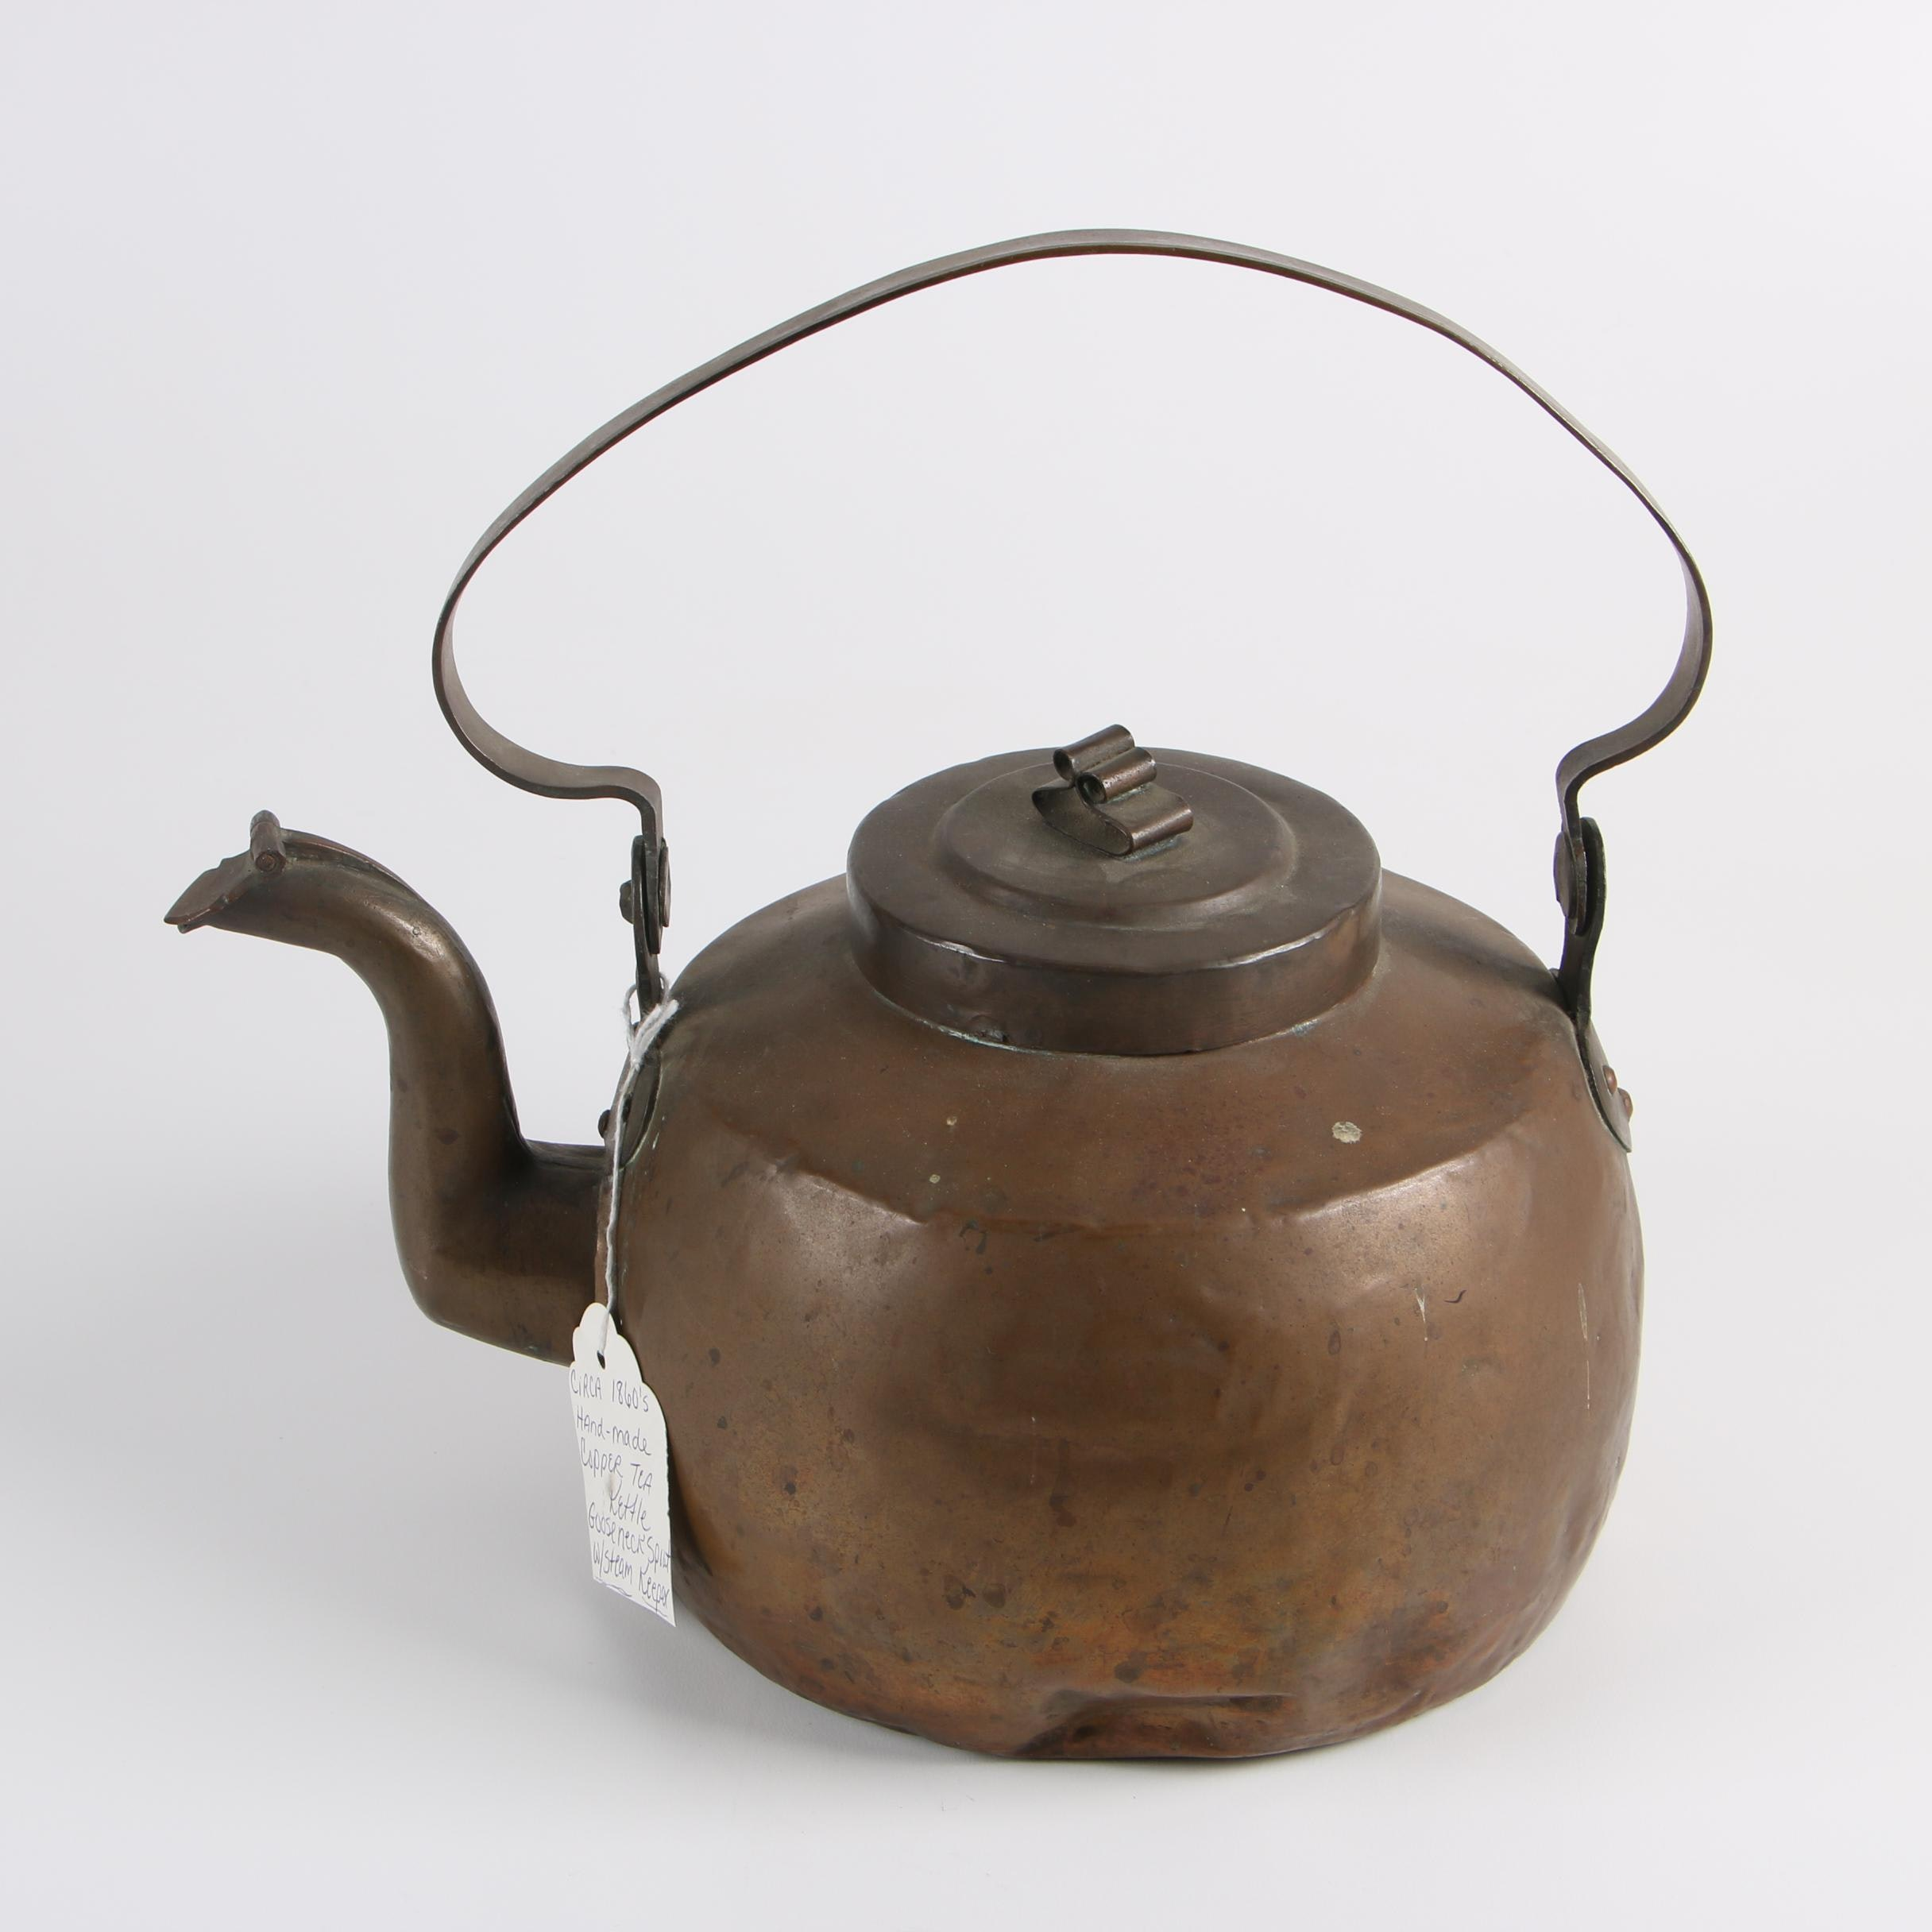 19th Century Dovetailed Copper Kettle with Covered Gooseneck Spout